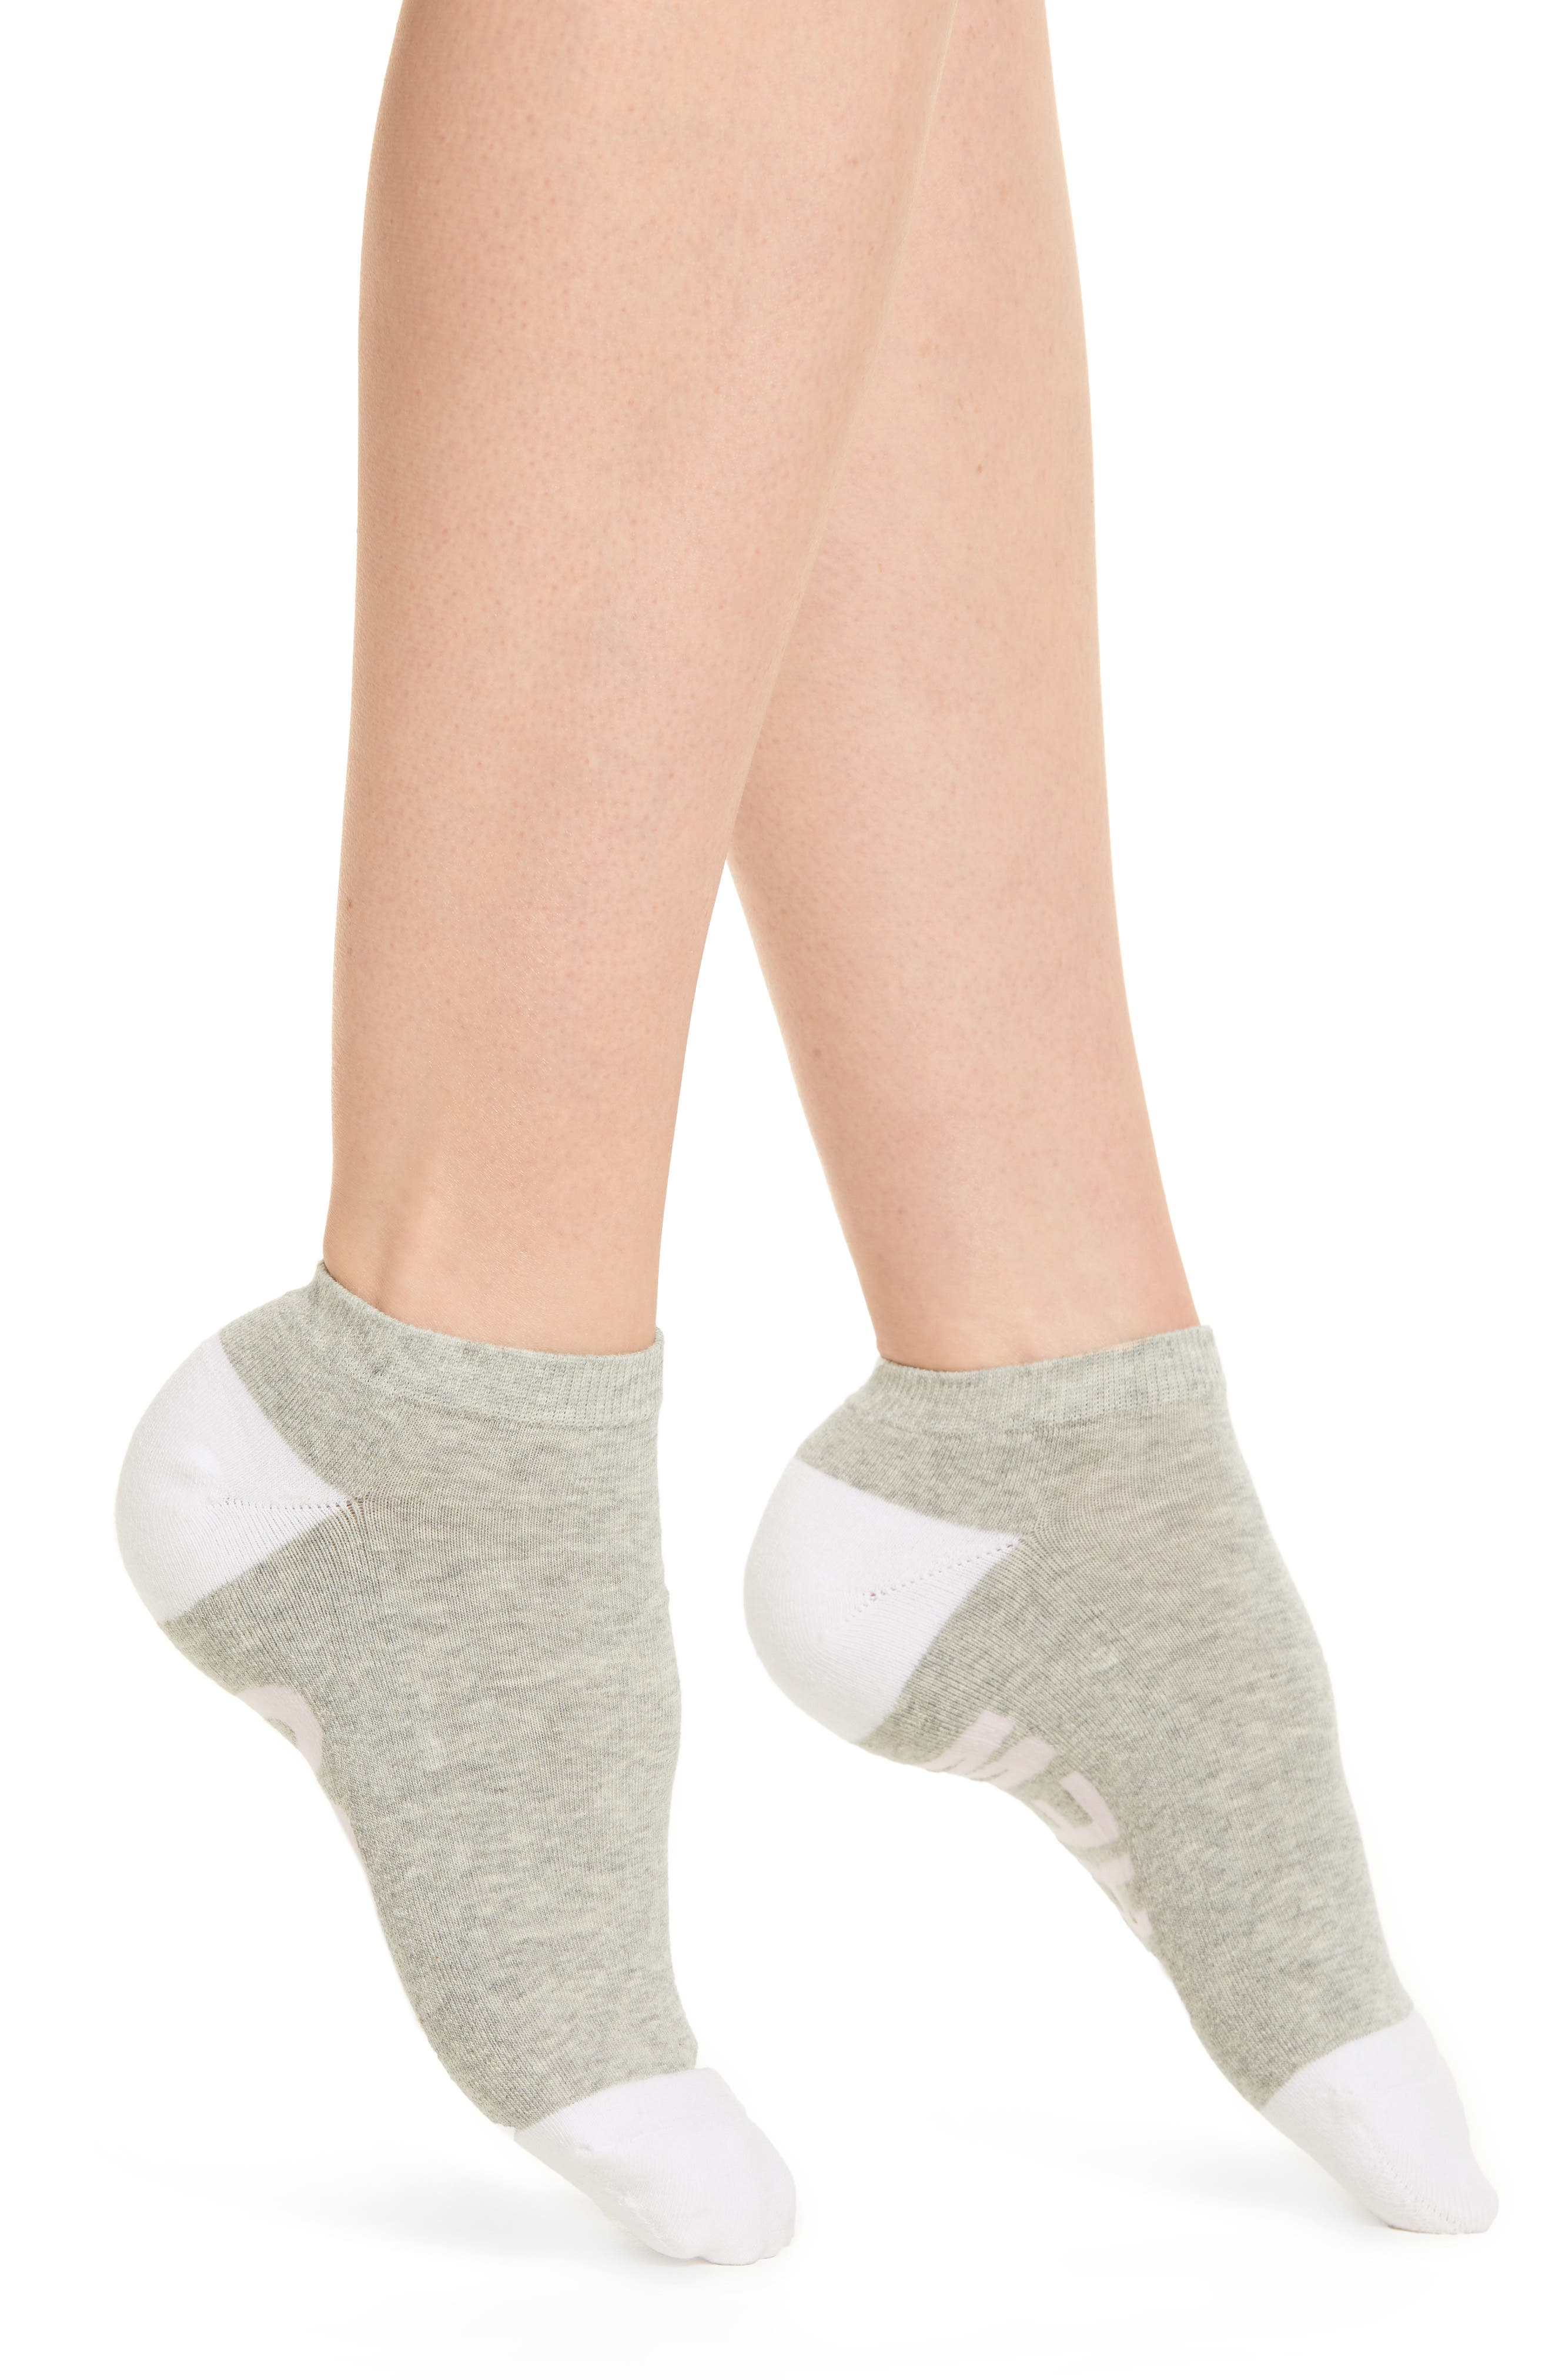 I Do Crew Low-Cut Socks,                         Main,                         color, 060